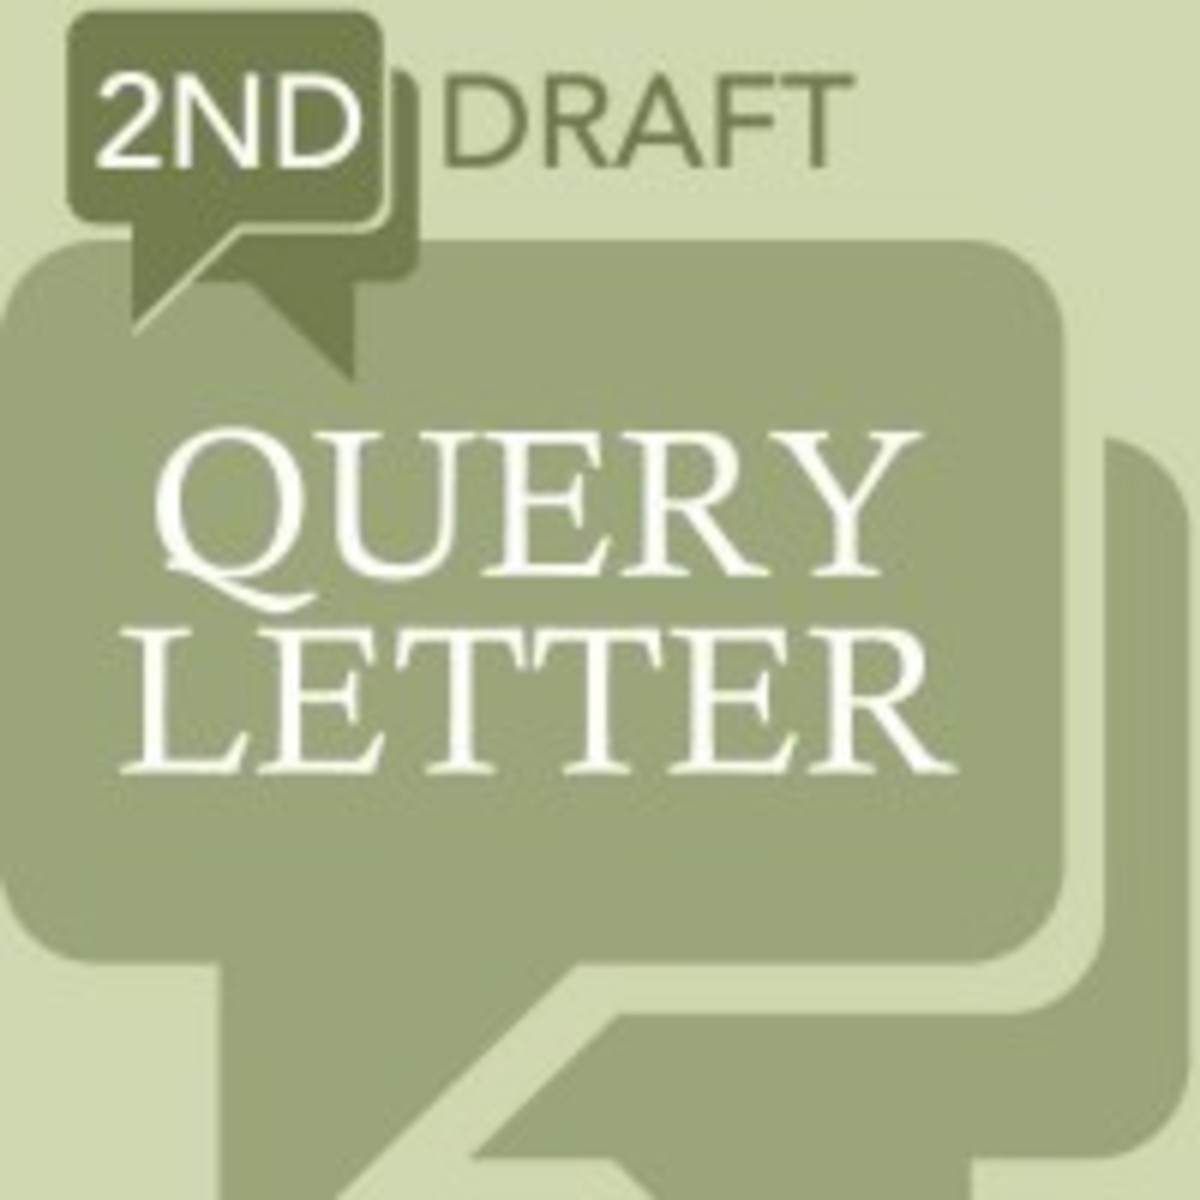 Are you done writing and revising your manuscript or nonfiction book proposal? Then you're ready to write a query letter. In order to ensure you make the best impression on literary agents and acquisitions editors, we recommend getting a 2nd Draft Query Letter Critique.